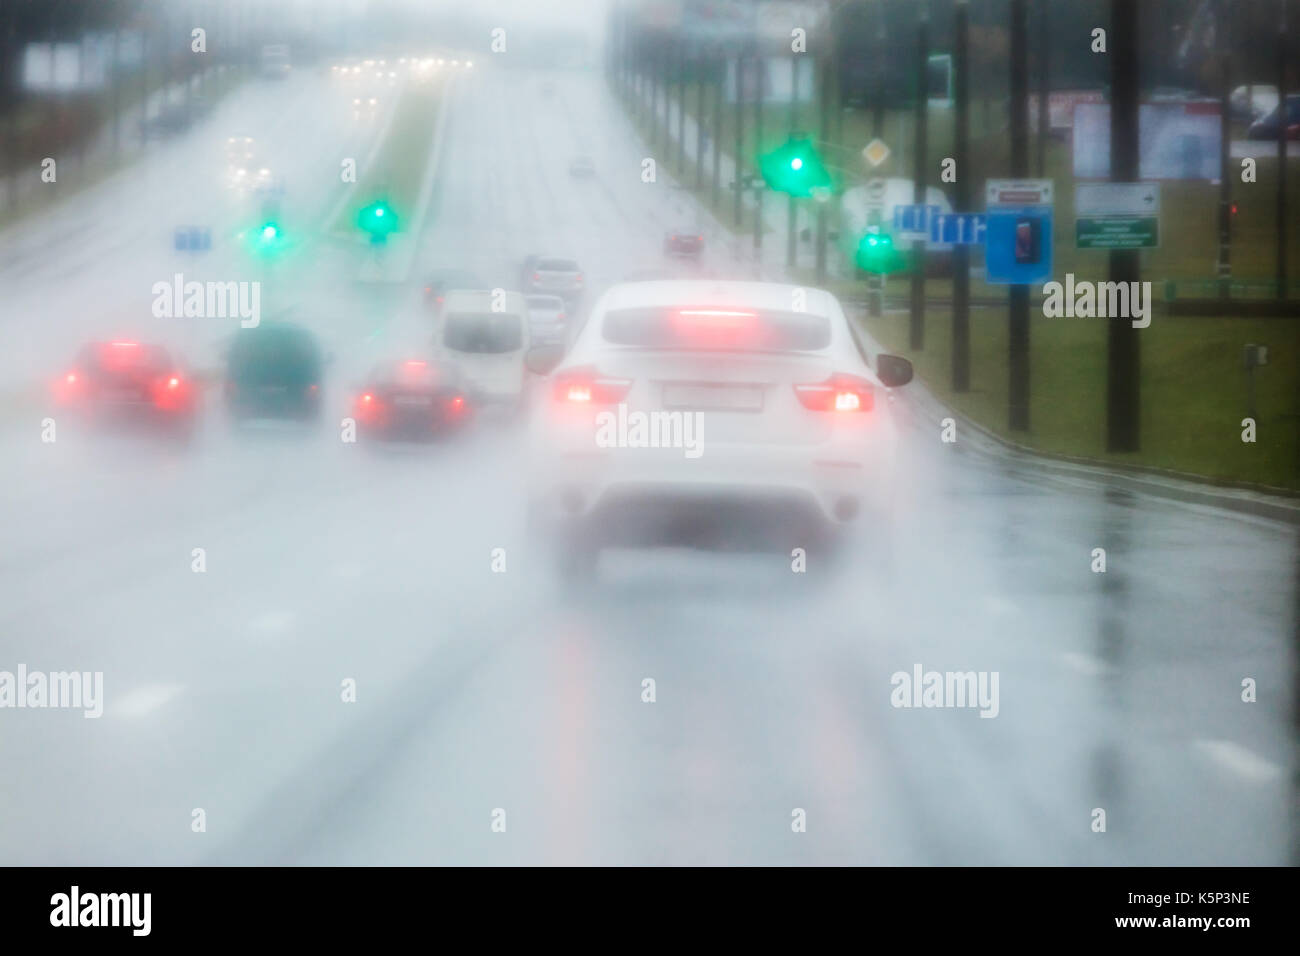 road blurred view through car windshield during heavy rain - Stock Image